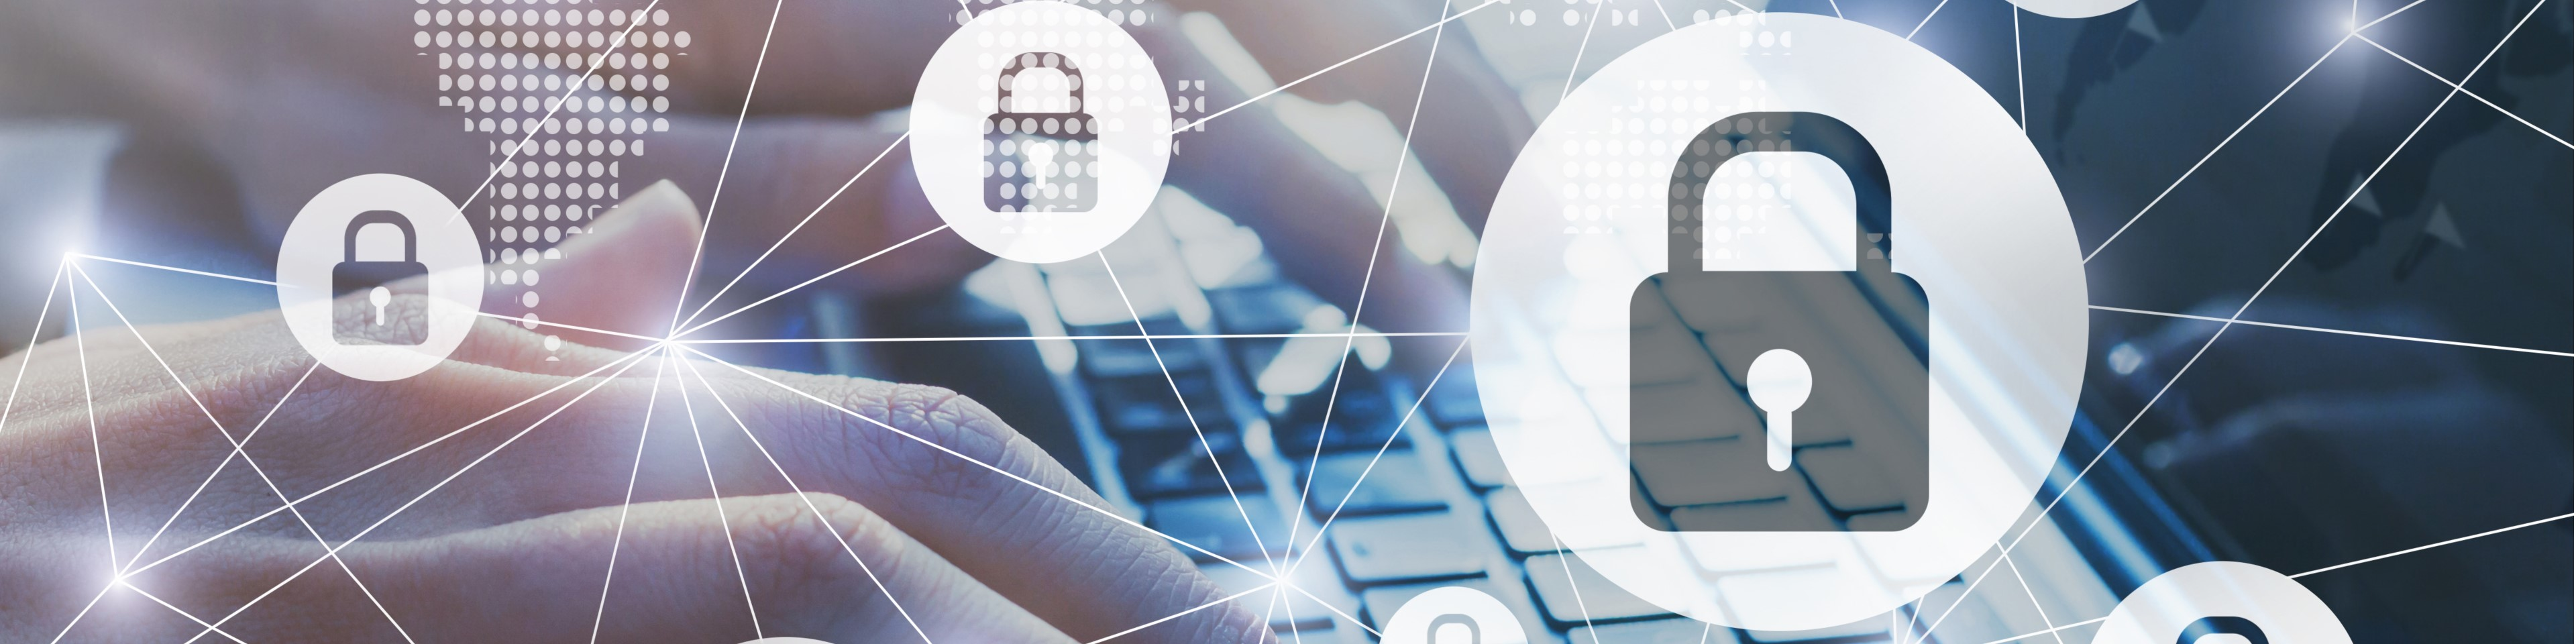 Compromised hearings cybersecurity and commercial arbitration